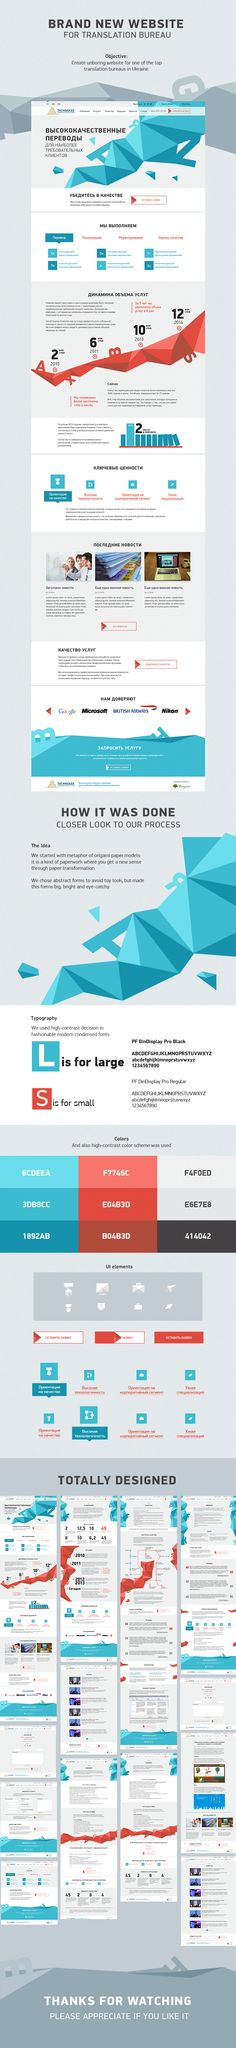 This site has nominated for the best design in the CSS Aword. It's a good corporate website, where the most important pages are made in the style of the landing. Some of the information submitted with graphics. It have the excellent modern design not accidently - our designers follow the world trends in this area. Both clients and we are very happy with the result.